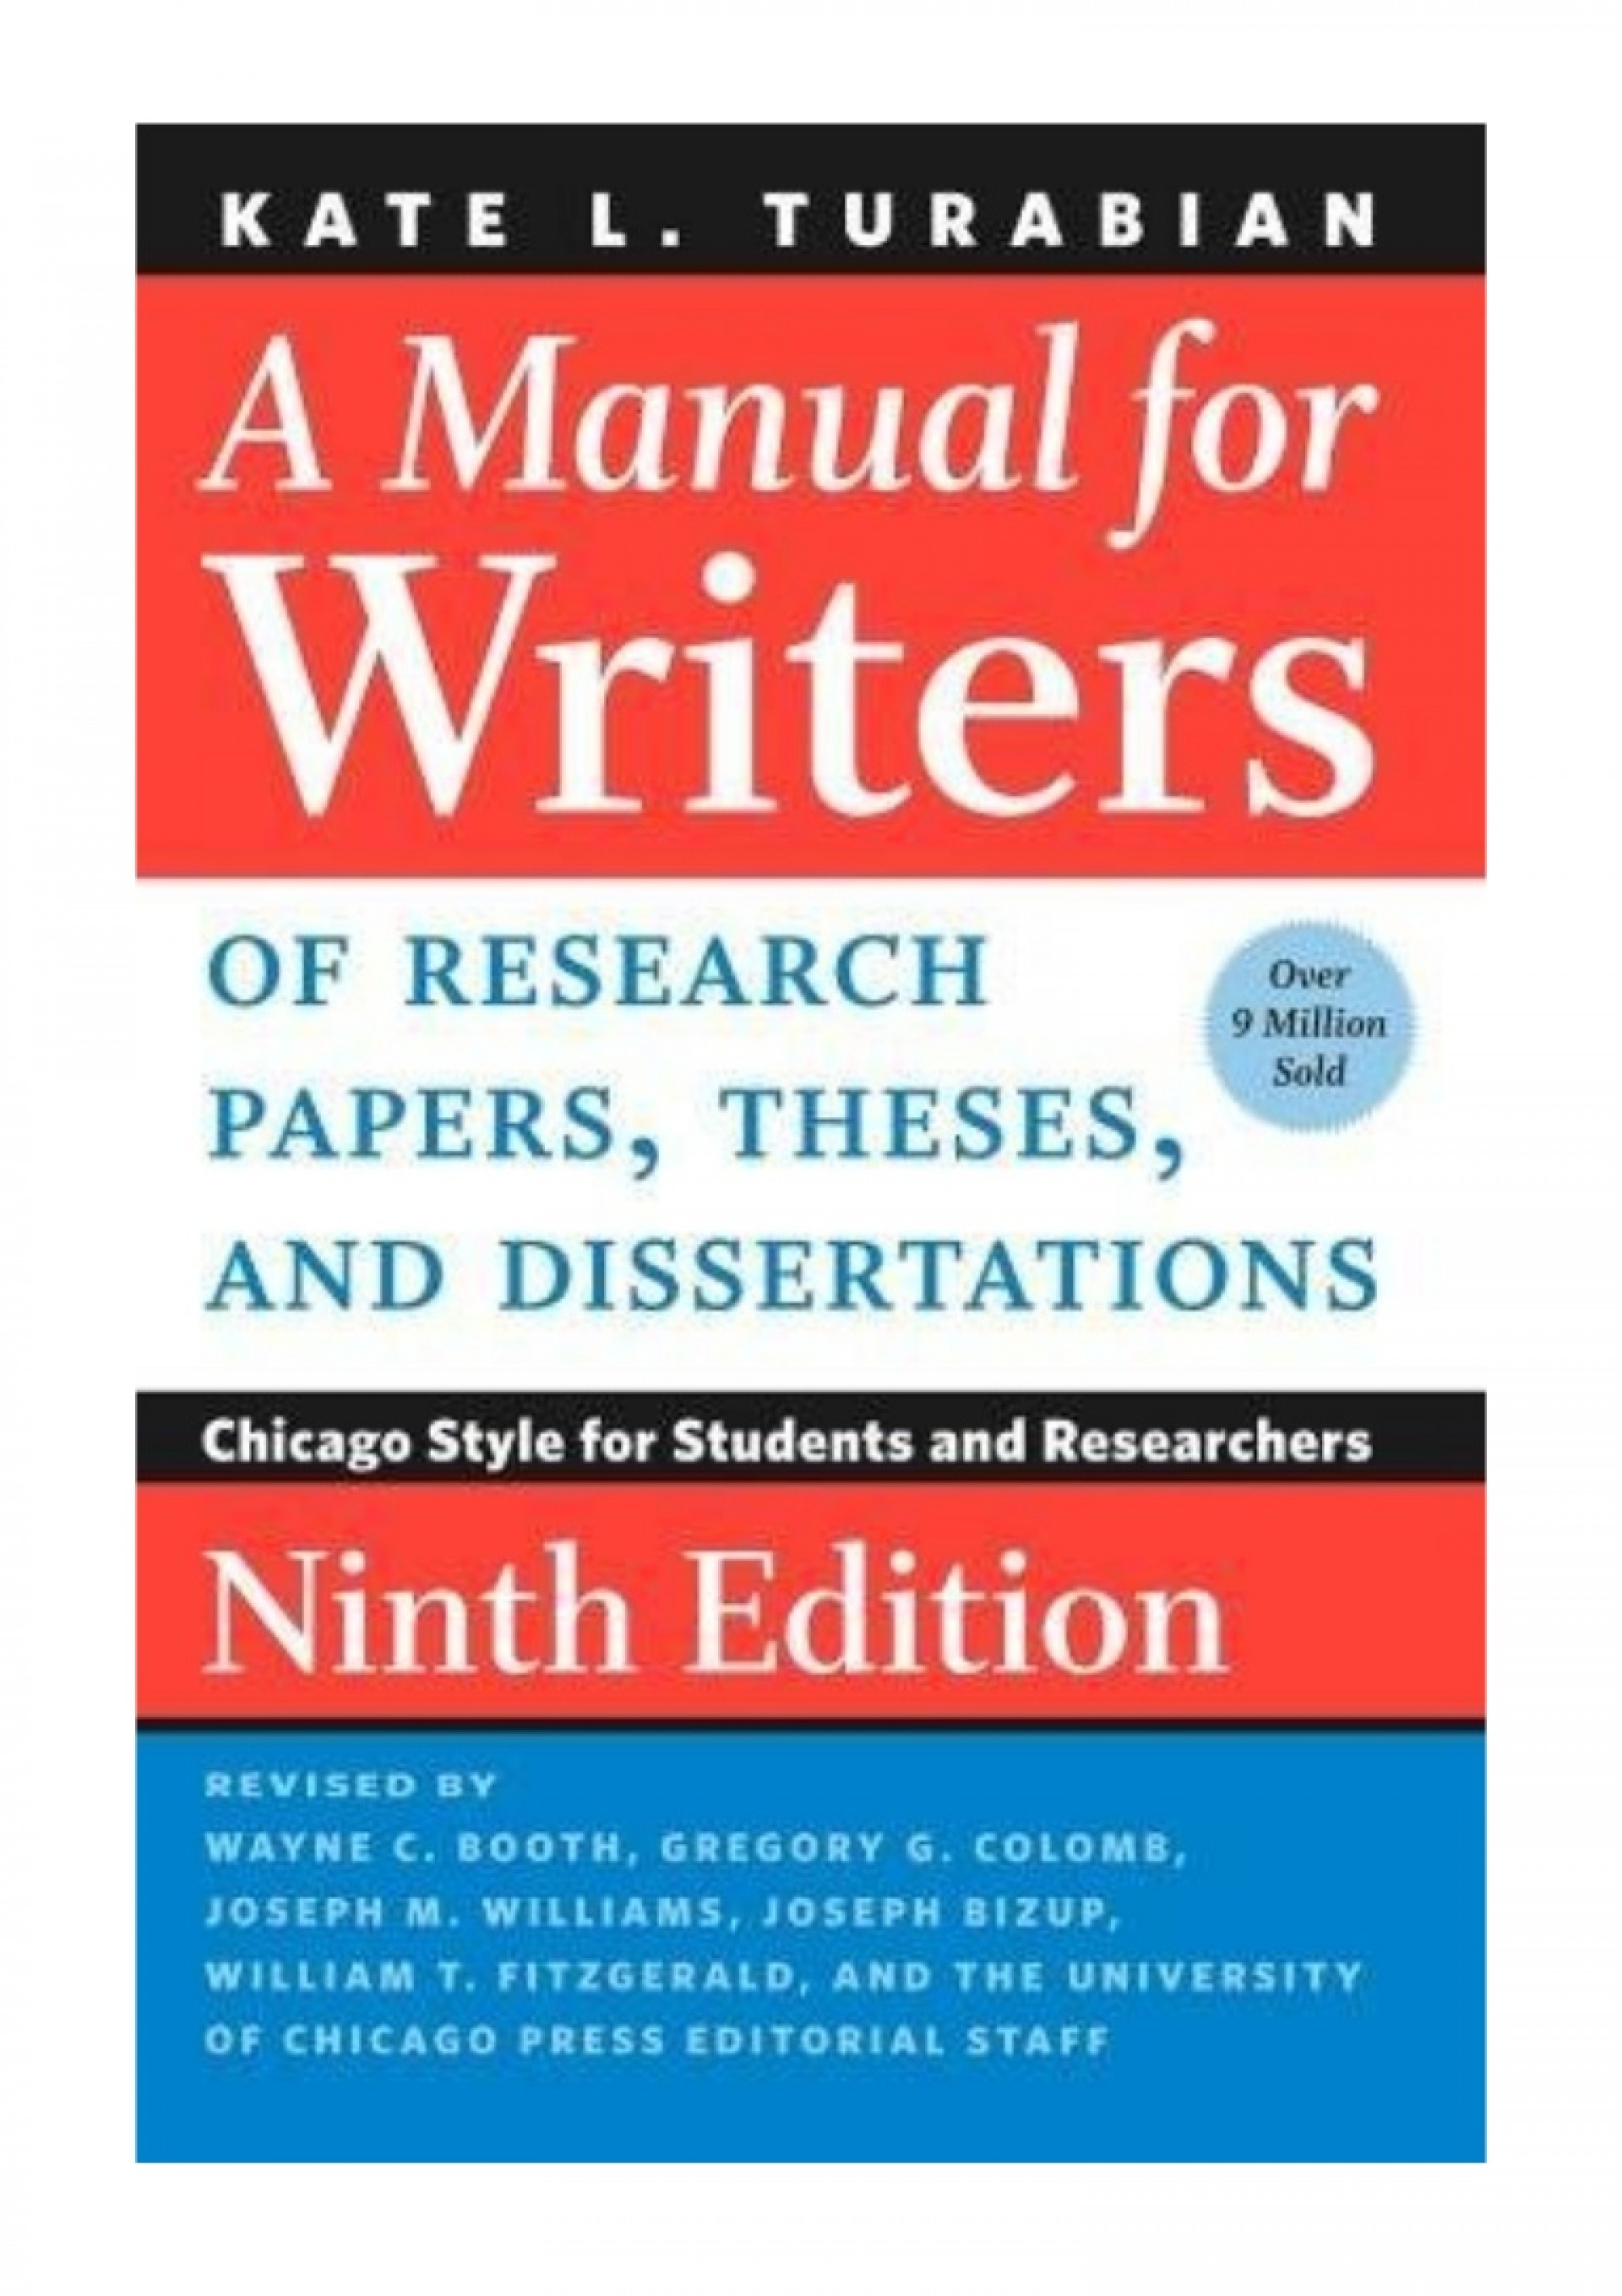 010 Manual For Writers Of Research Papers Theses And Dissertations Paper 022643057x Amanualforwritersofresearchpapersthesesanddissertationsnintheditionbykatel Thumbnail Magnificent A 8th Ed Pdf 1920